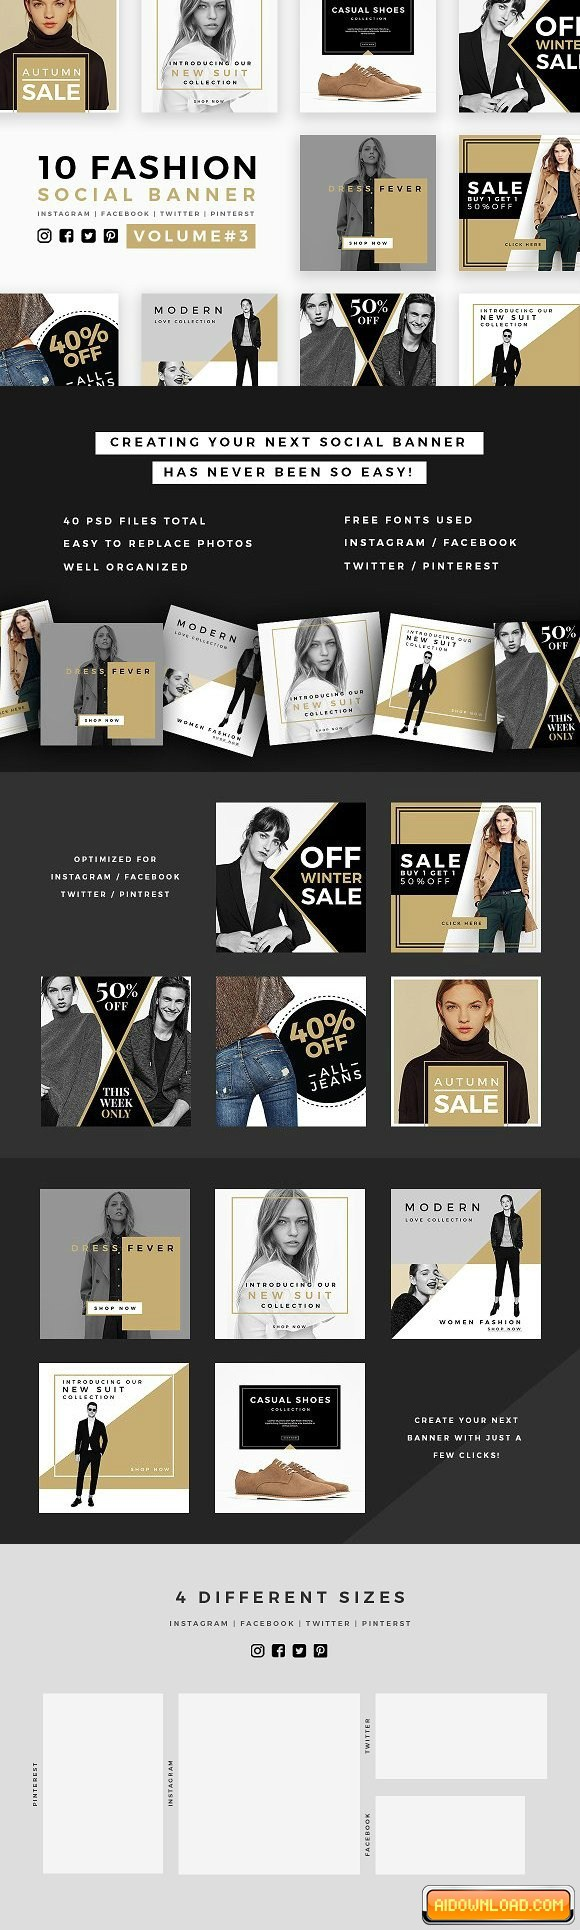 Fashion Social Banner Pack 3 Free Download | Free Graphic Templates ...